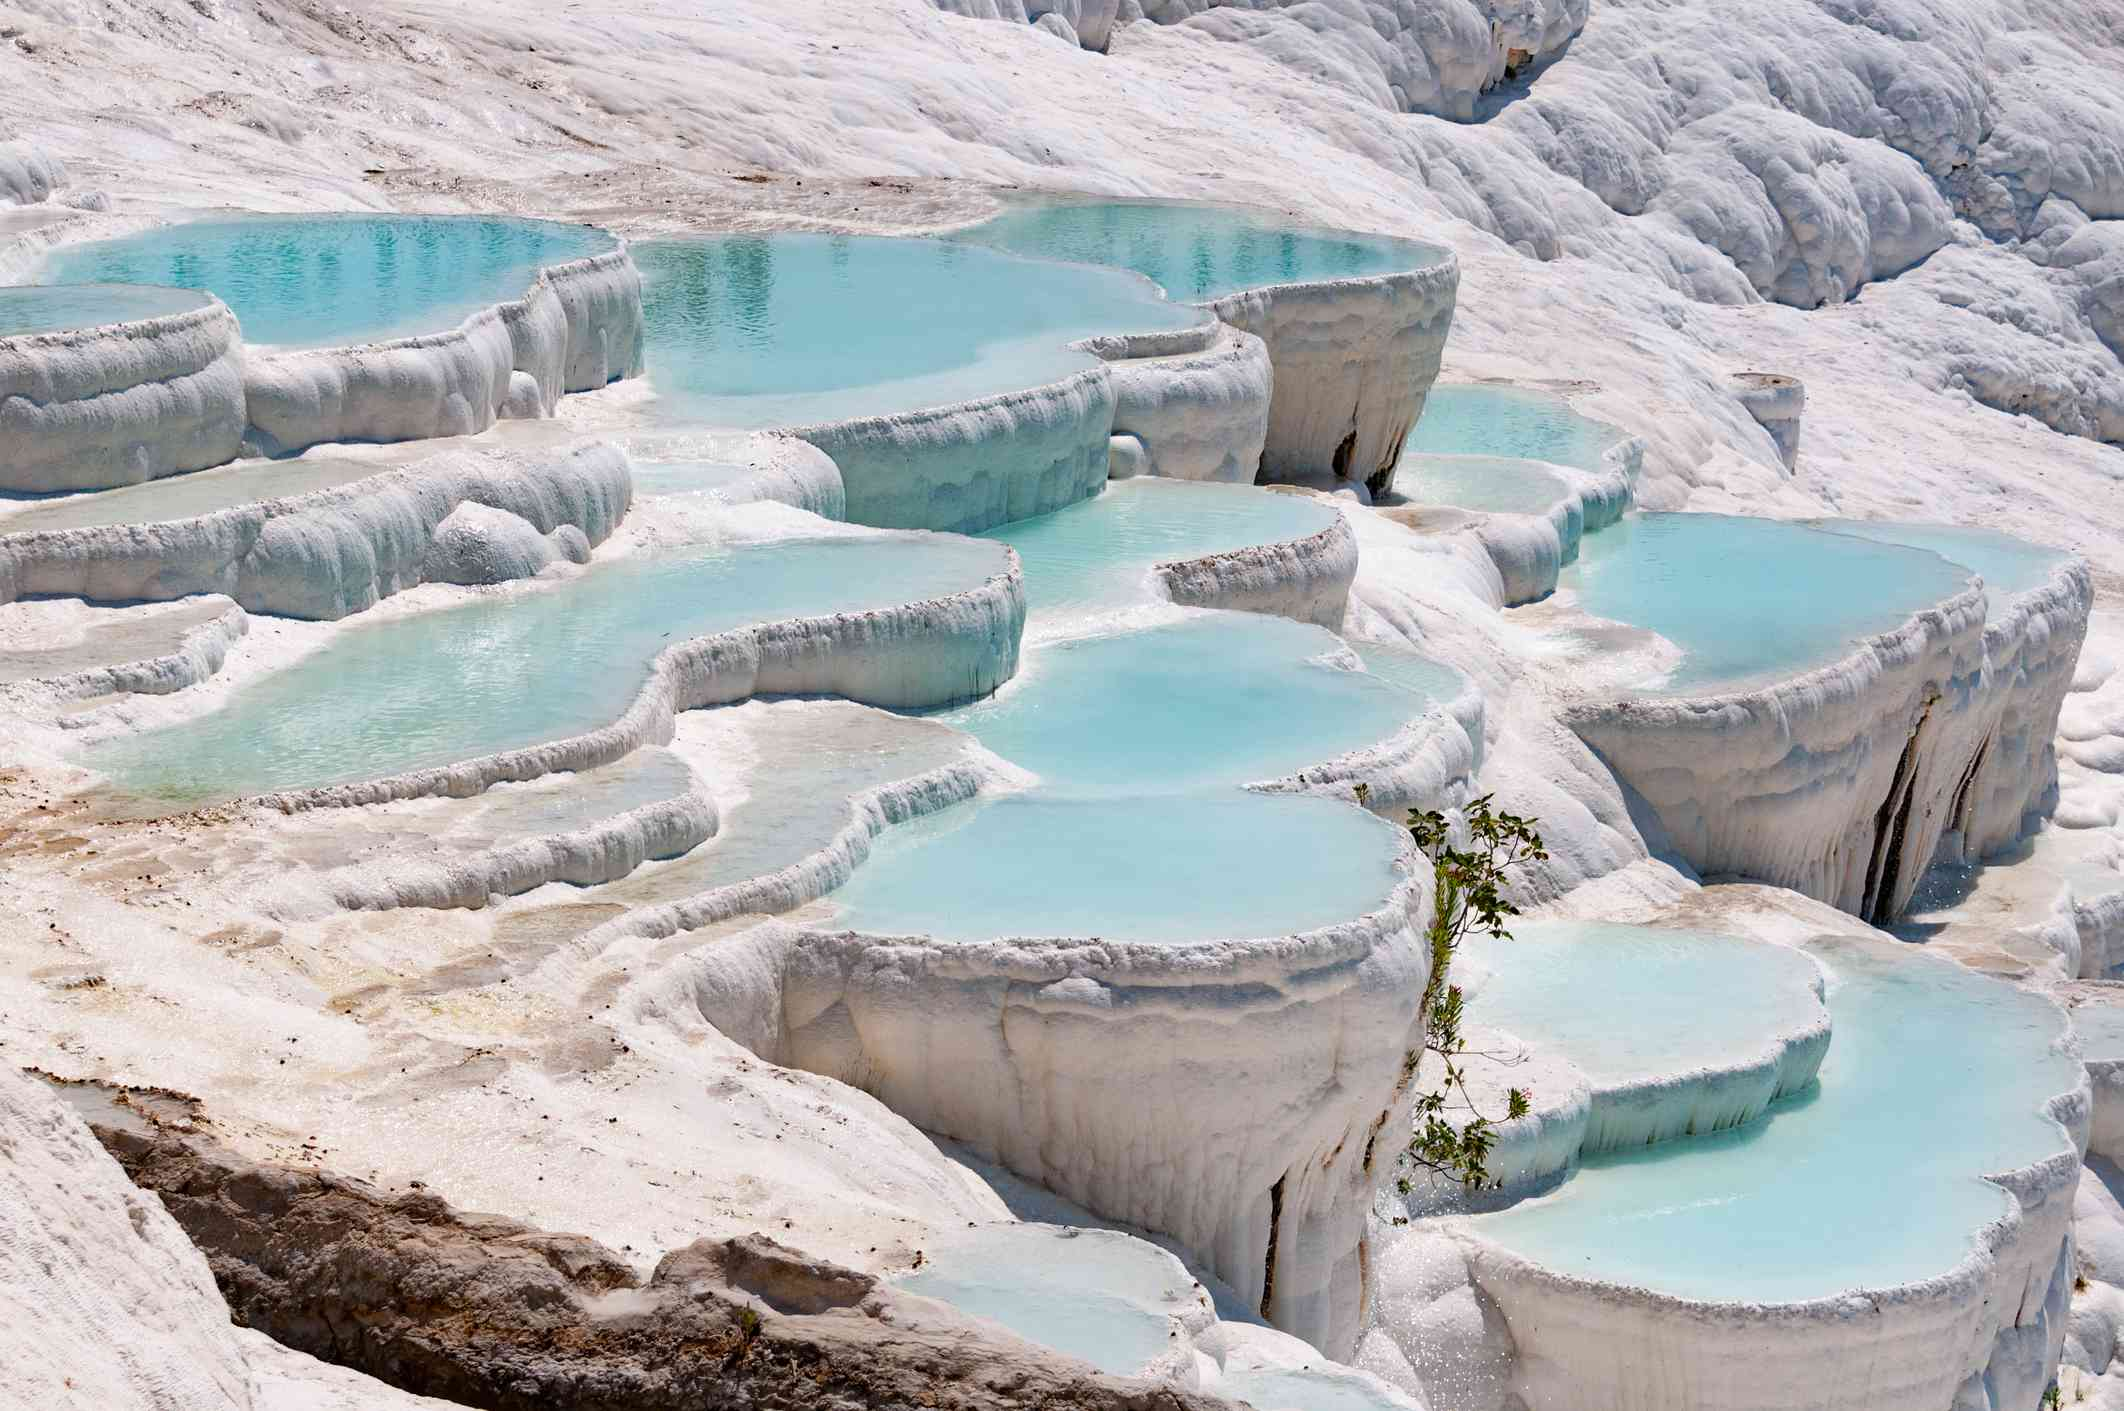 Turquoise pools in travertine terraces at Pamukkale, Turkey